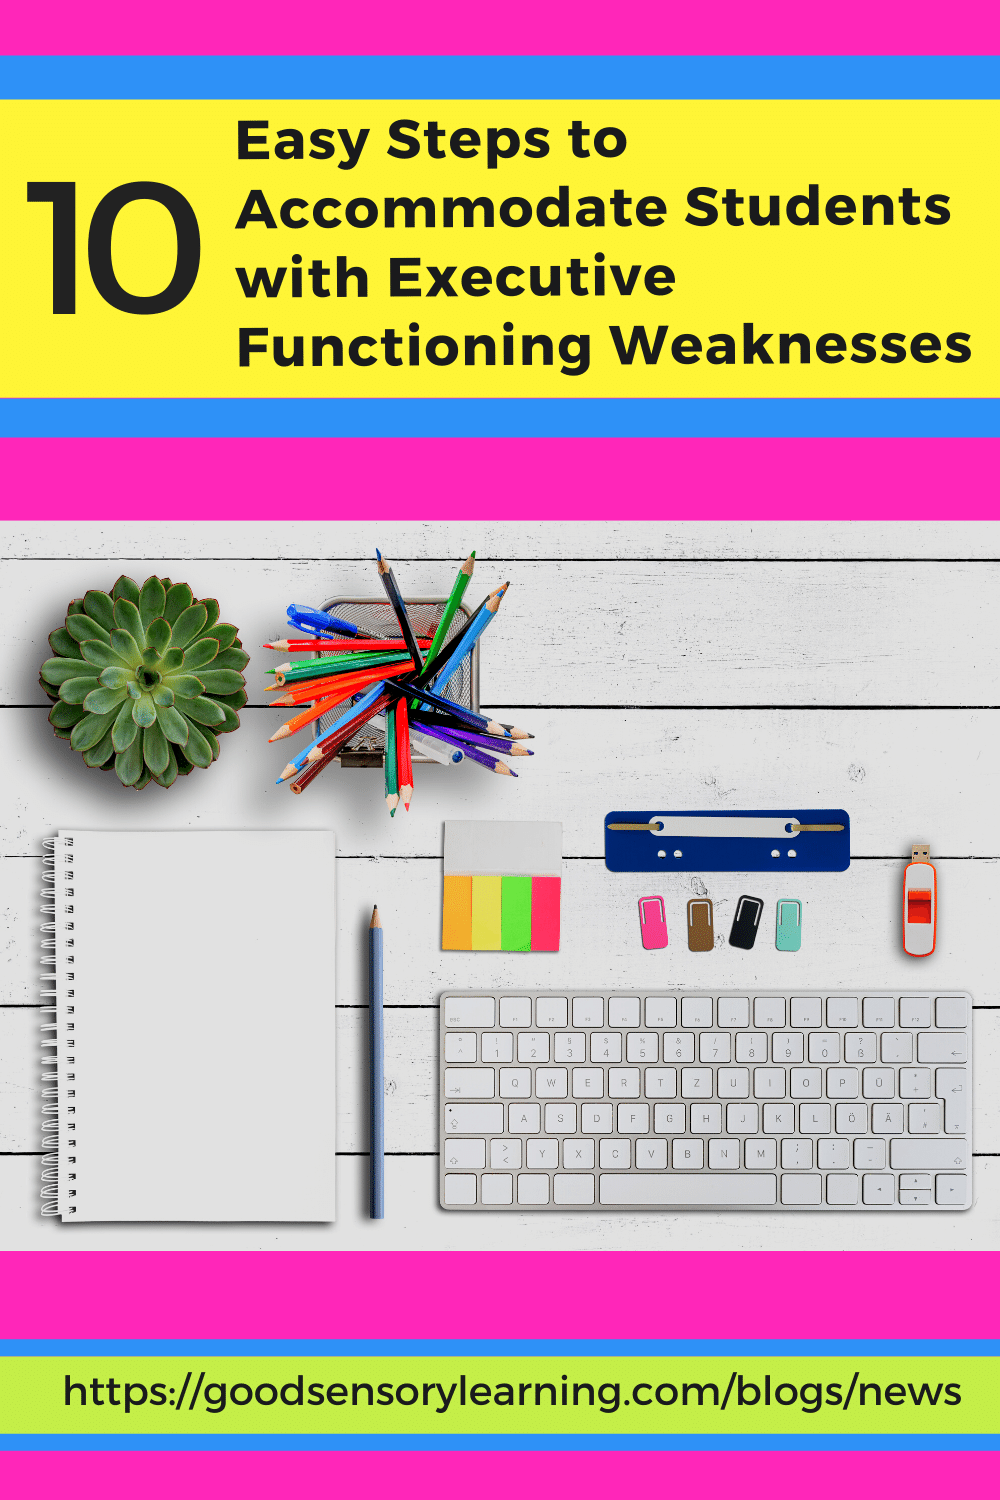 Accommodate executive functioning weaknesses